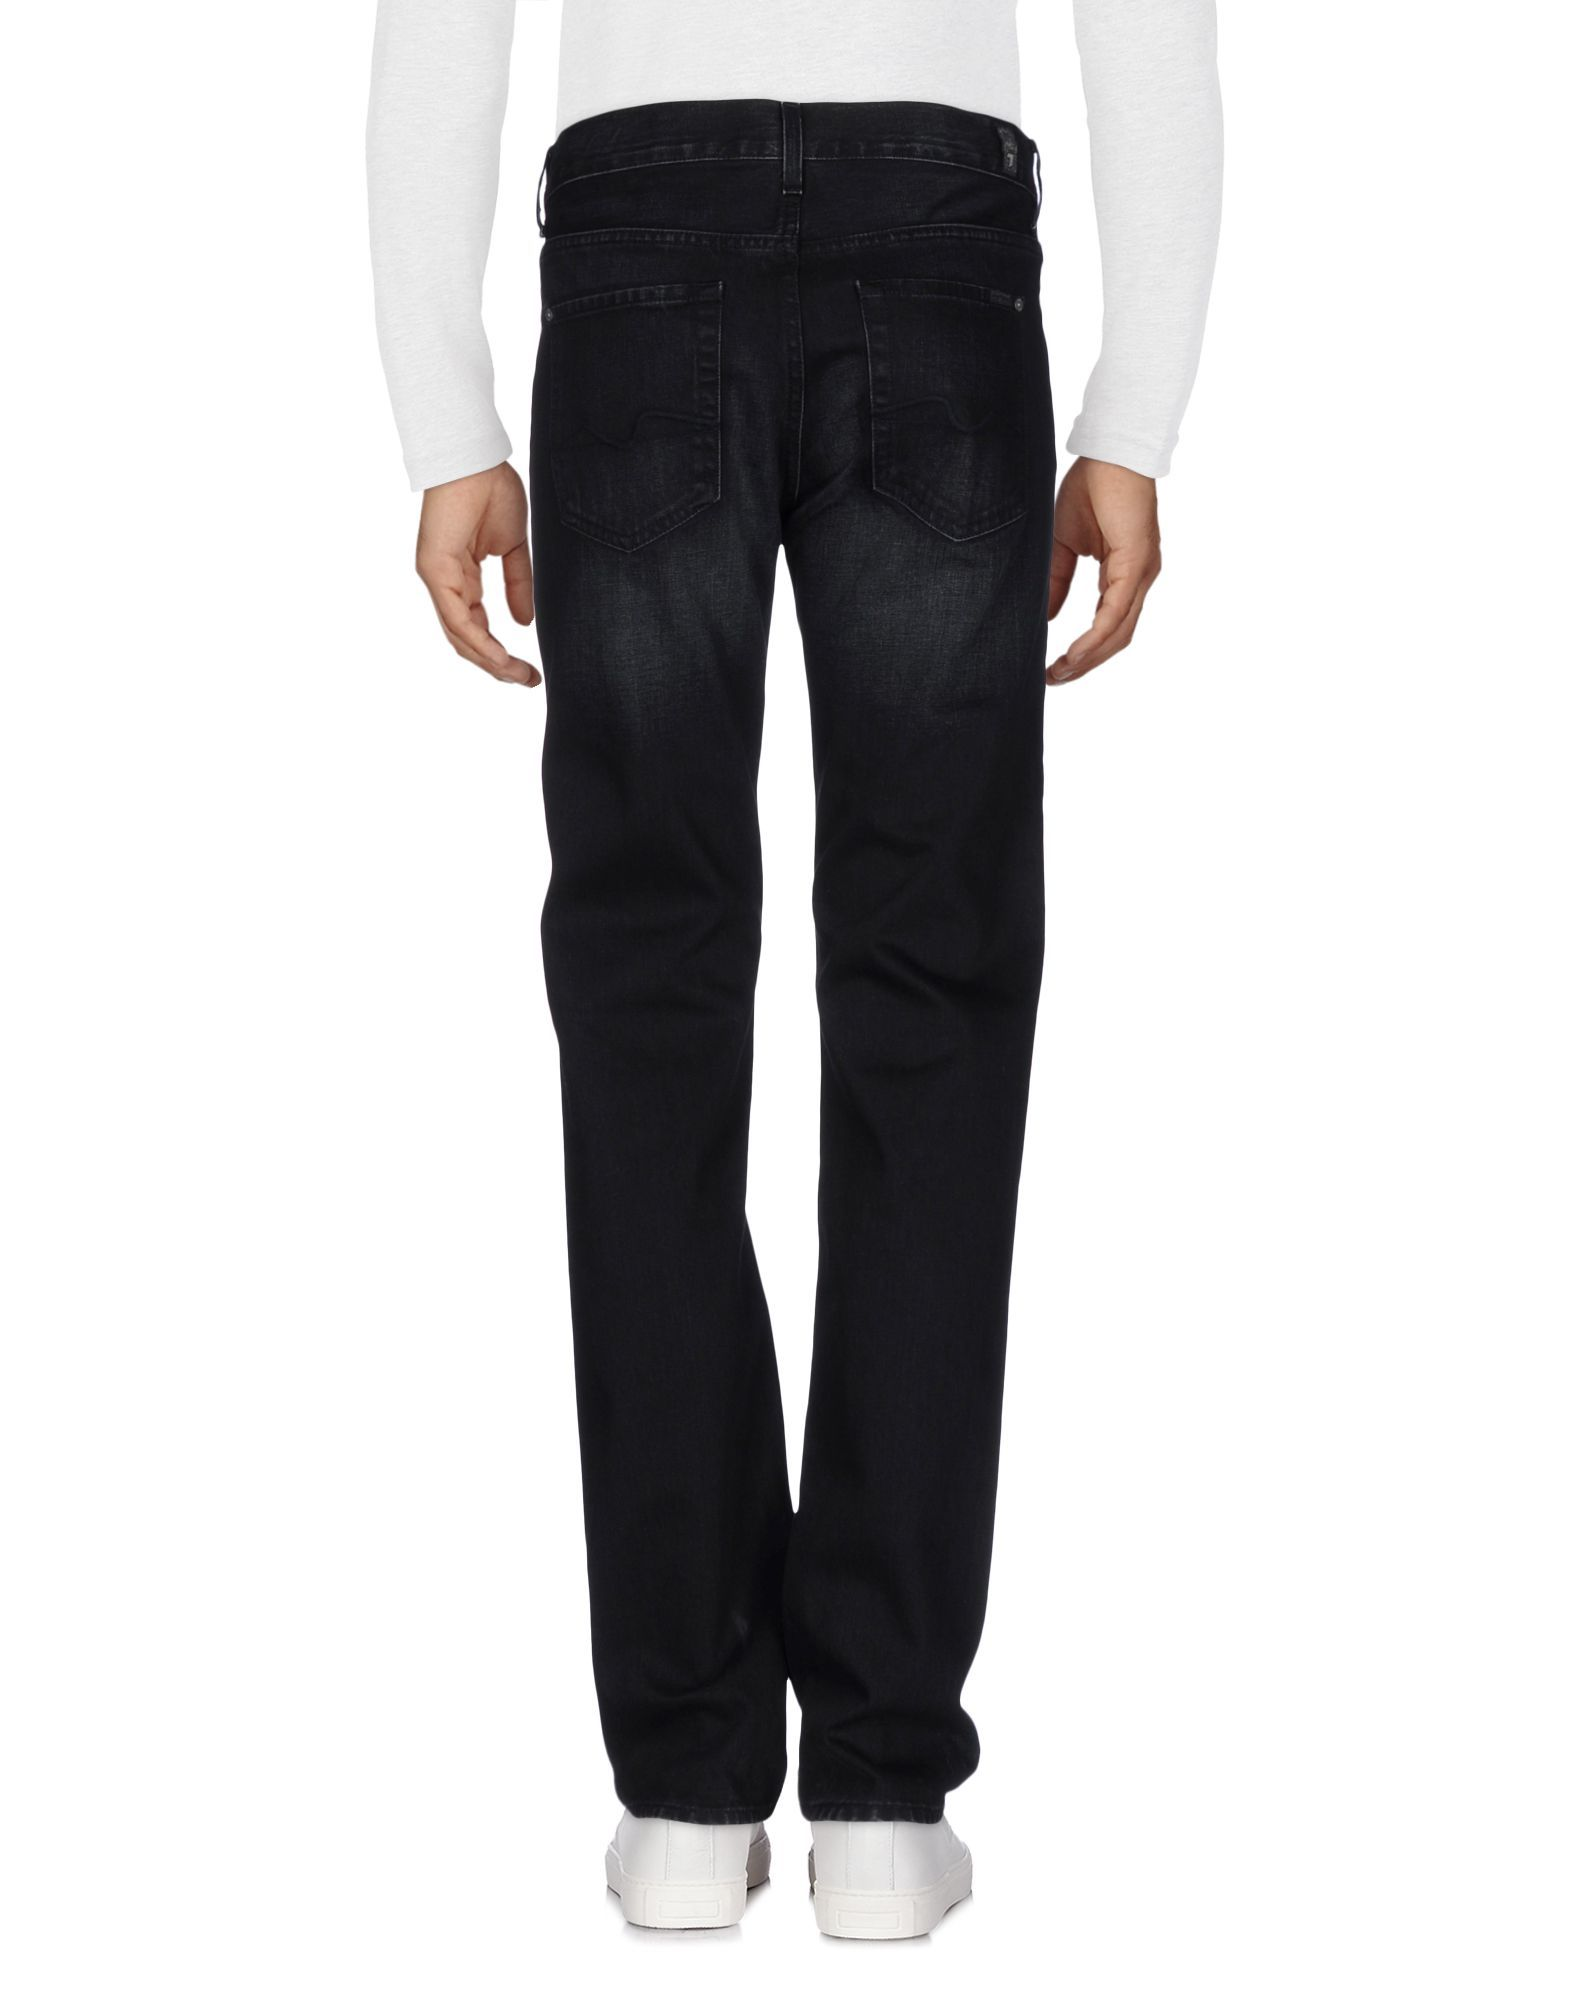 7 For All Mankind Black Cotton Jeans